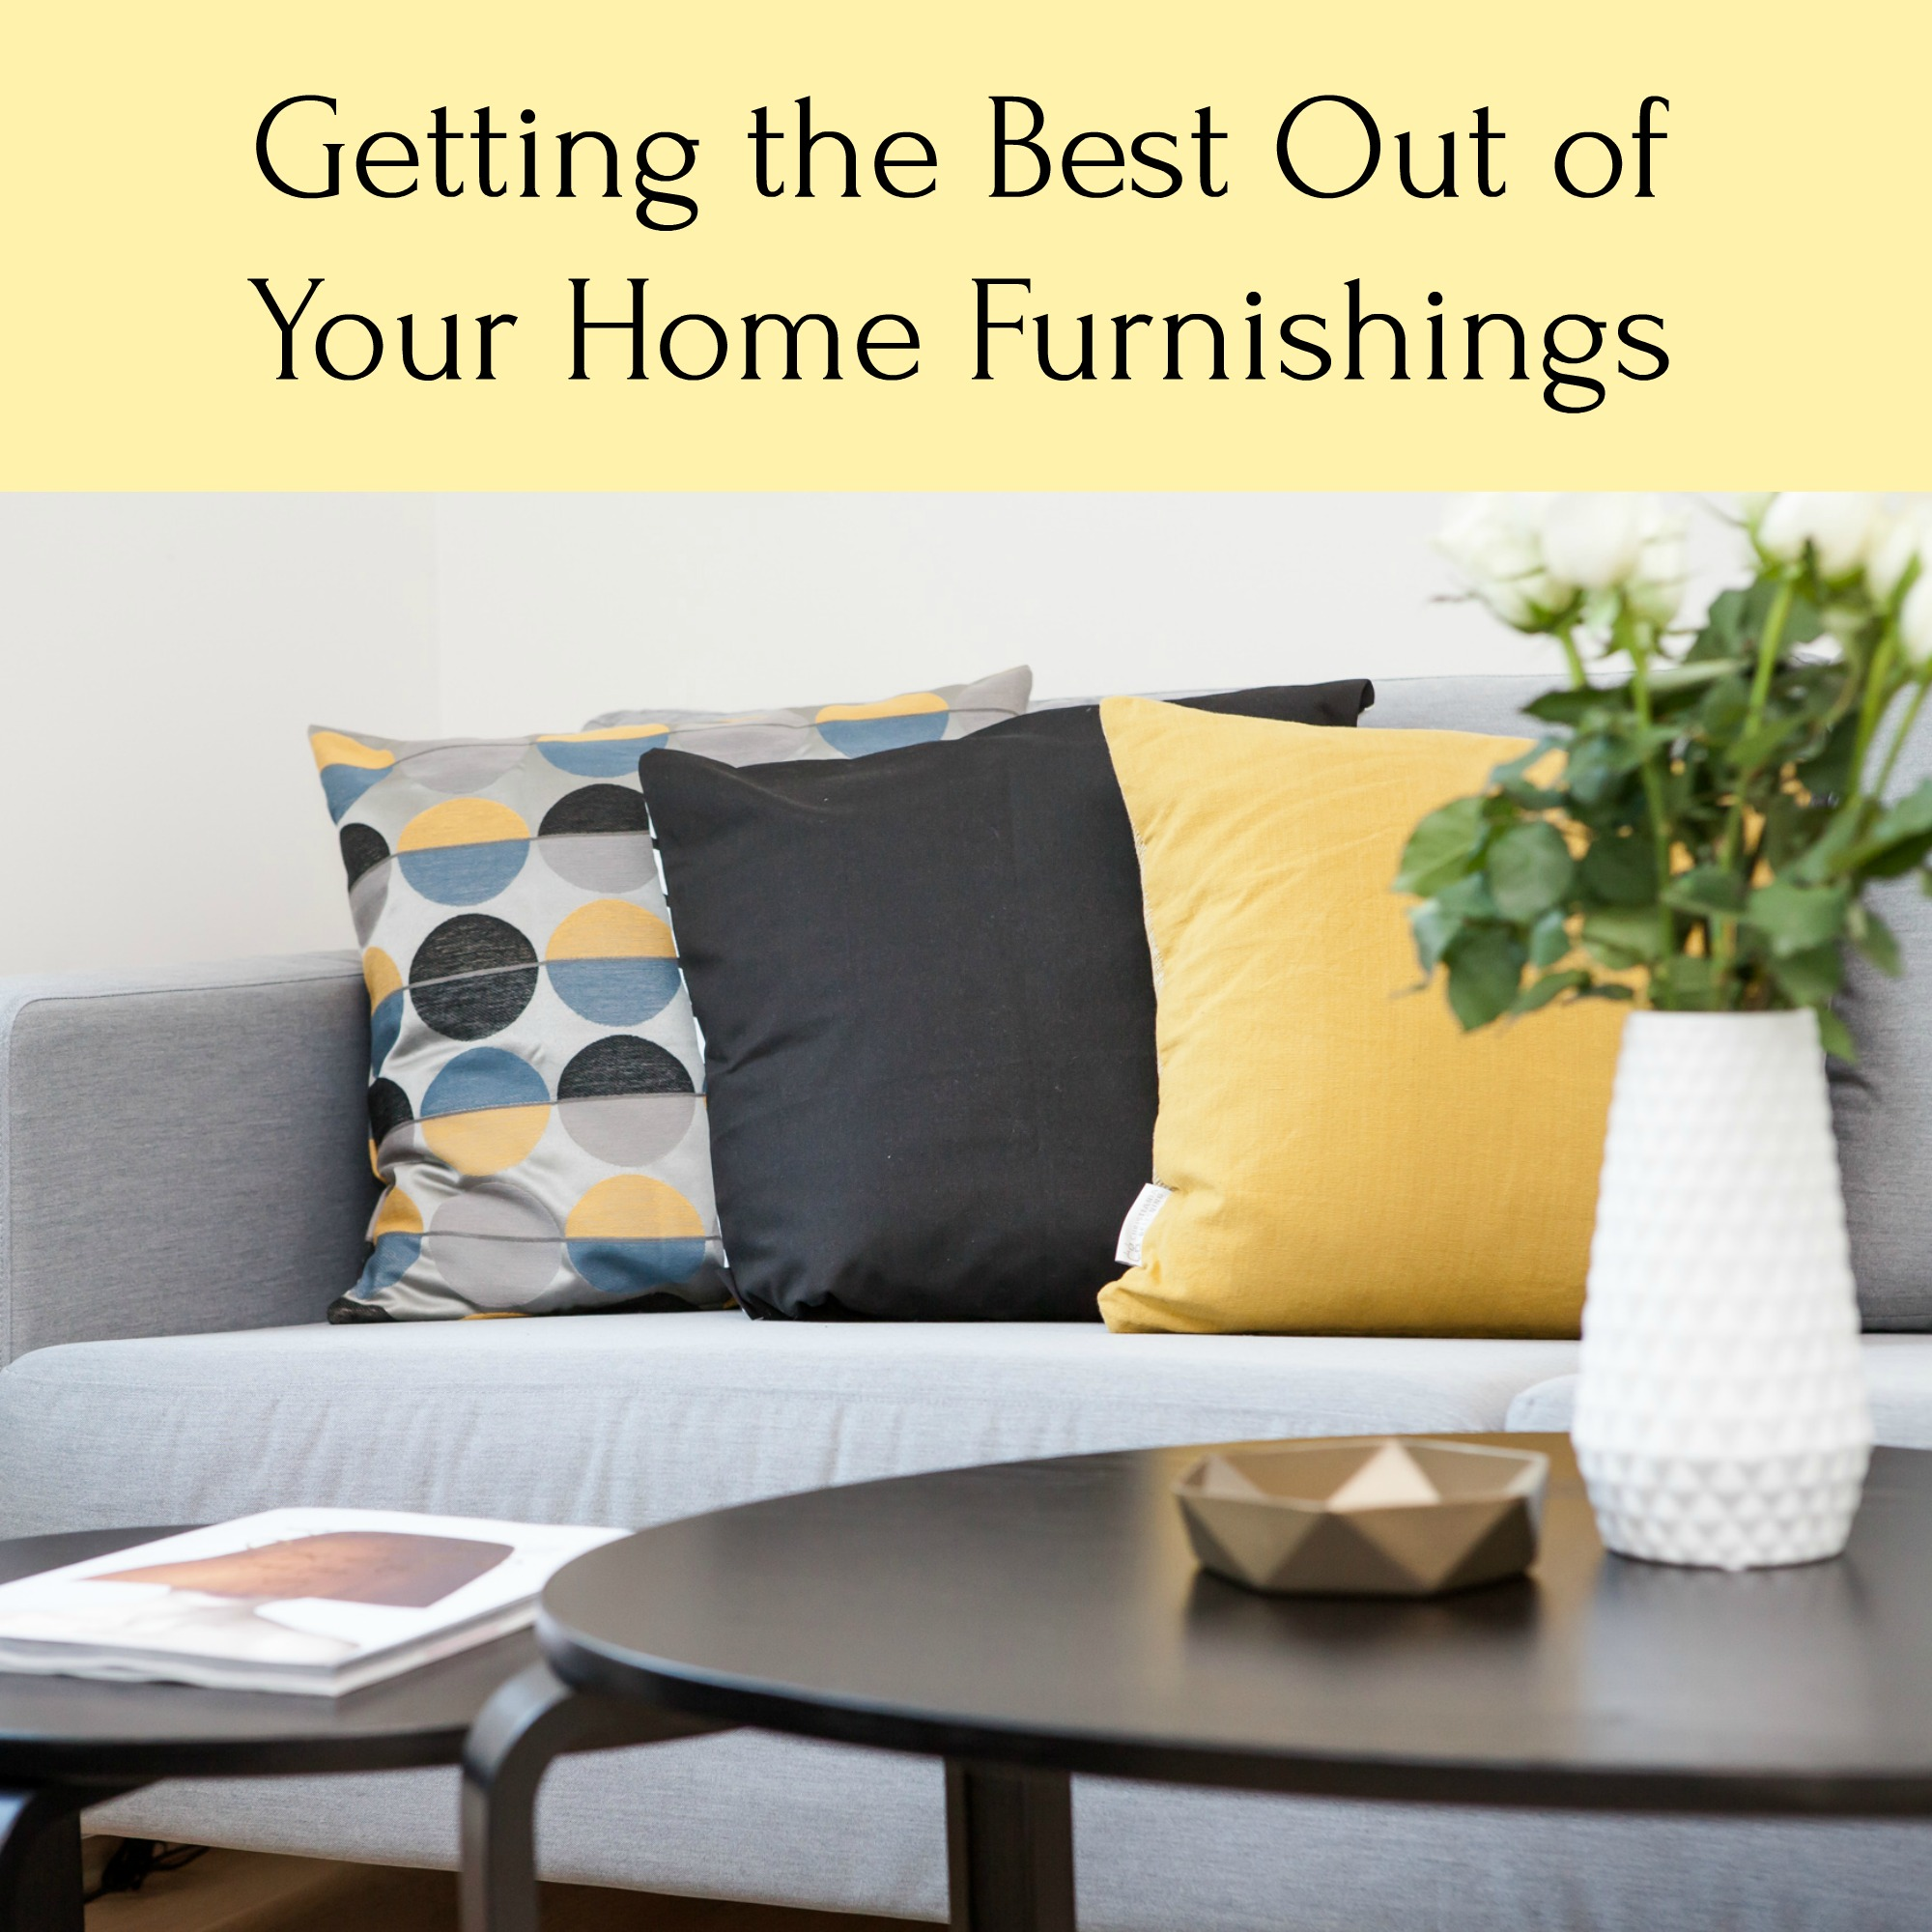 Getting the Best Out of Your Home Furnishings